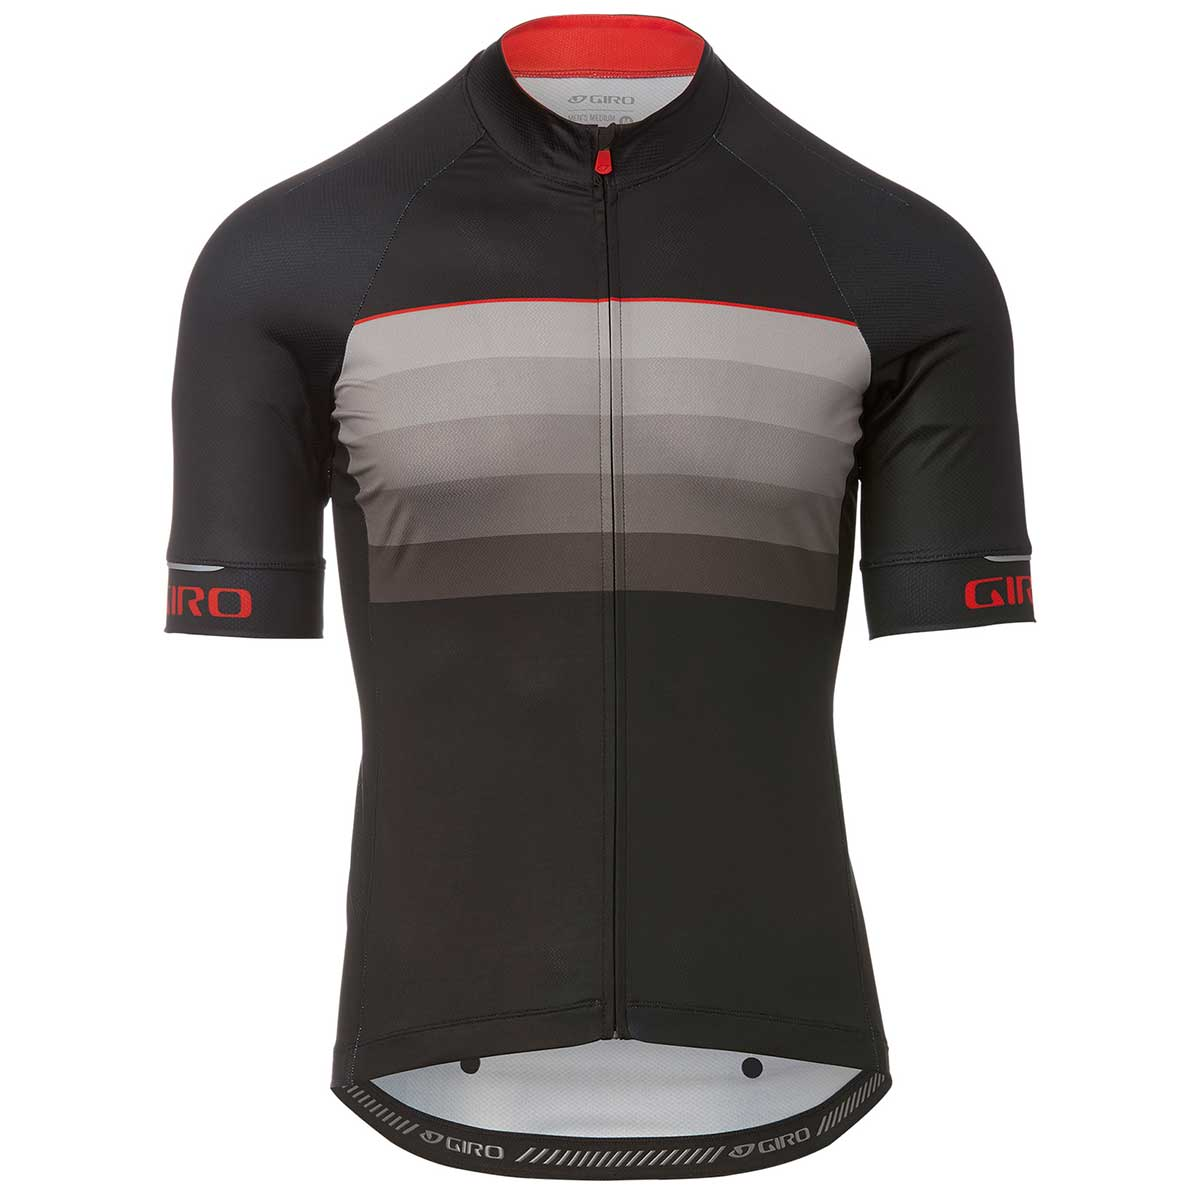 Giro Chrono Expert Jersey in Black Red Horizon front view